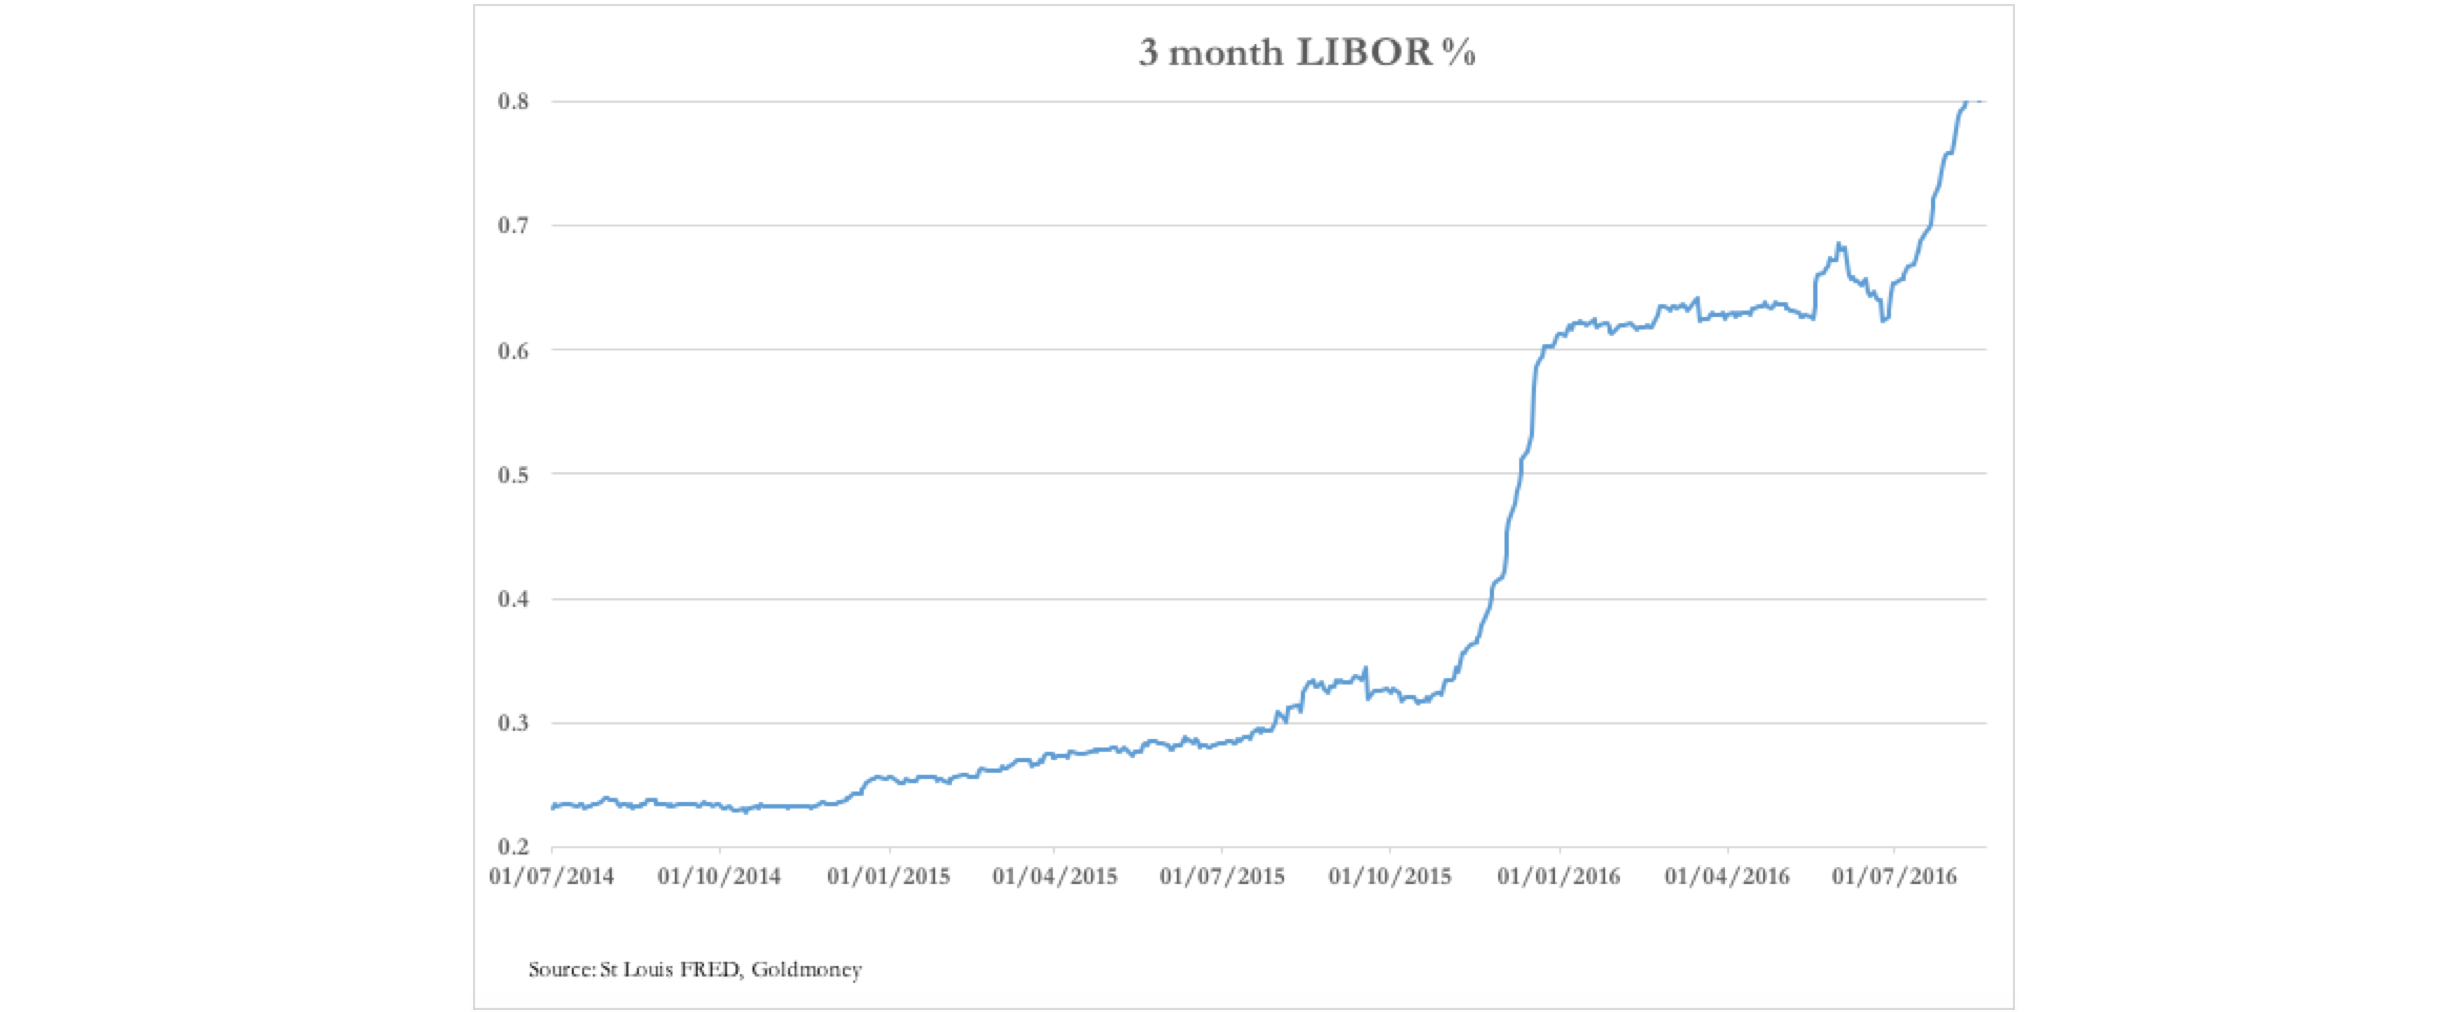 3 Month LIBOR Percentage